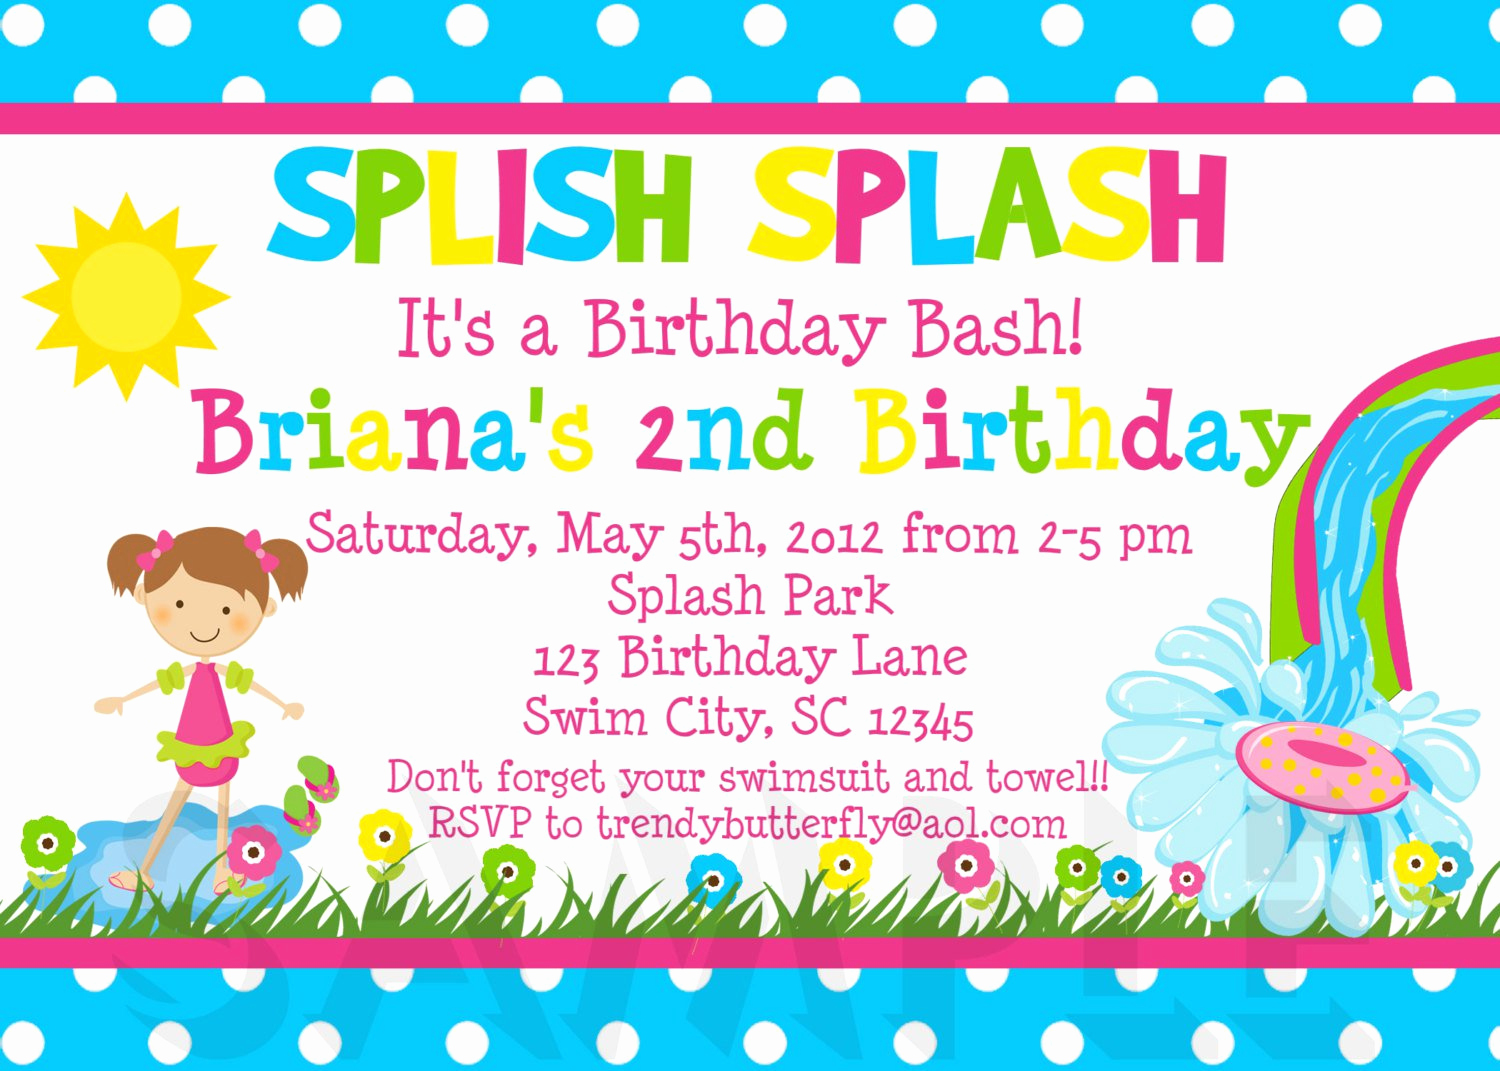 11th Birthday Invitation Wording Fresh 11th Birthday Party Invitation Wording